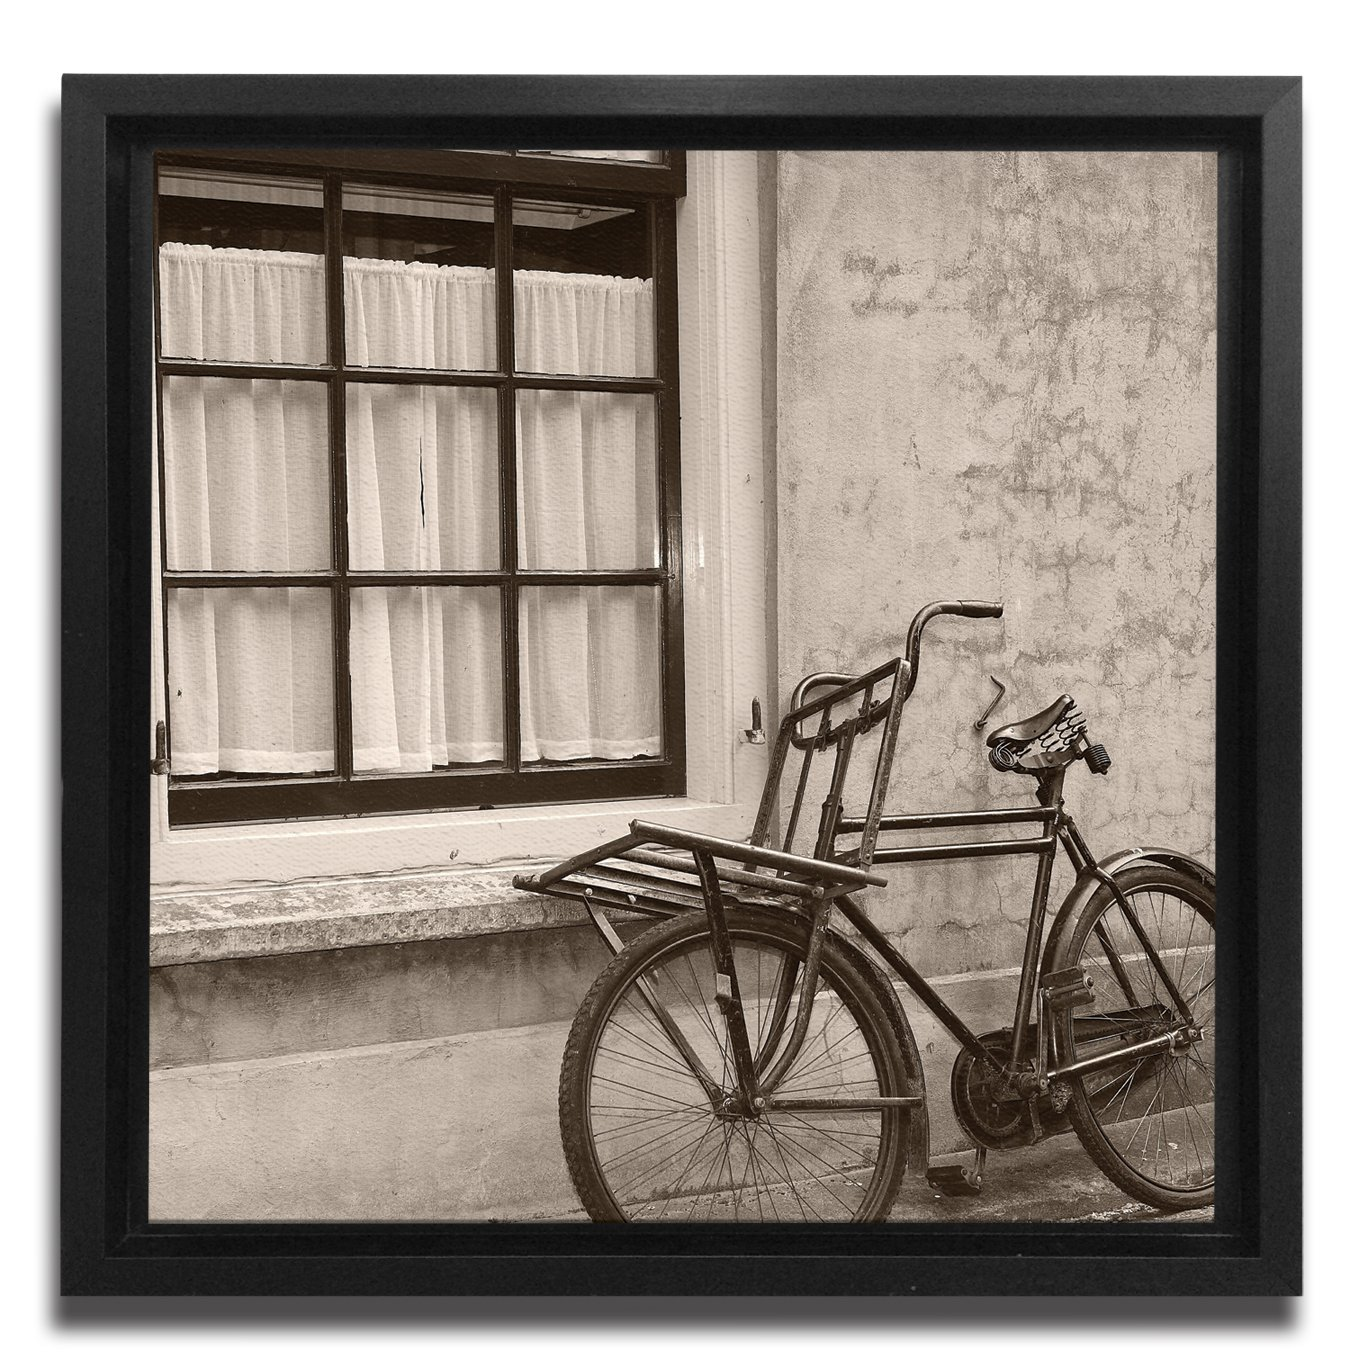 JP London Ready to Hang Made in North America Framed 1.5in Thick Gallery Wrap Canvas Wall Art Old School Sepia Italy Streets 18in SQSFCNV2038